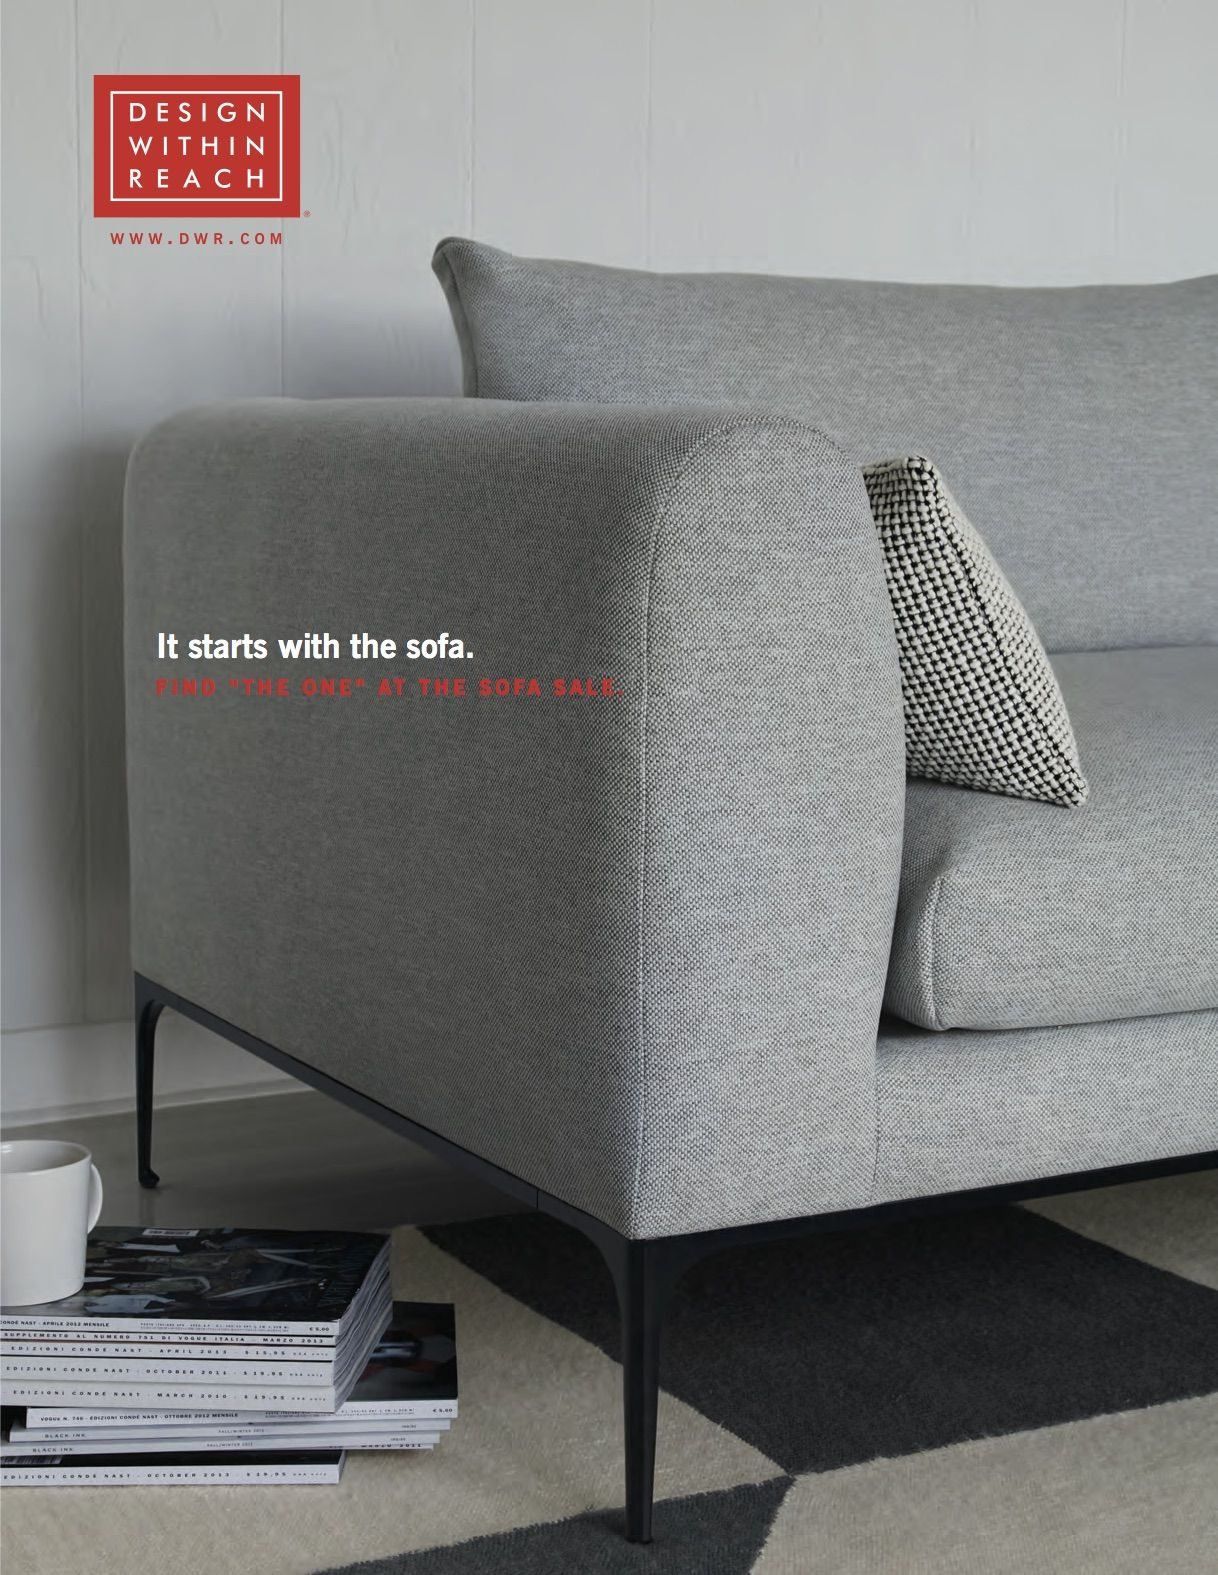 Sofa Covers Sleeper sofas Matera Bed With Storage Design Within Reach